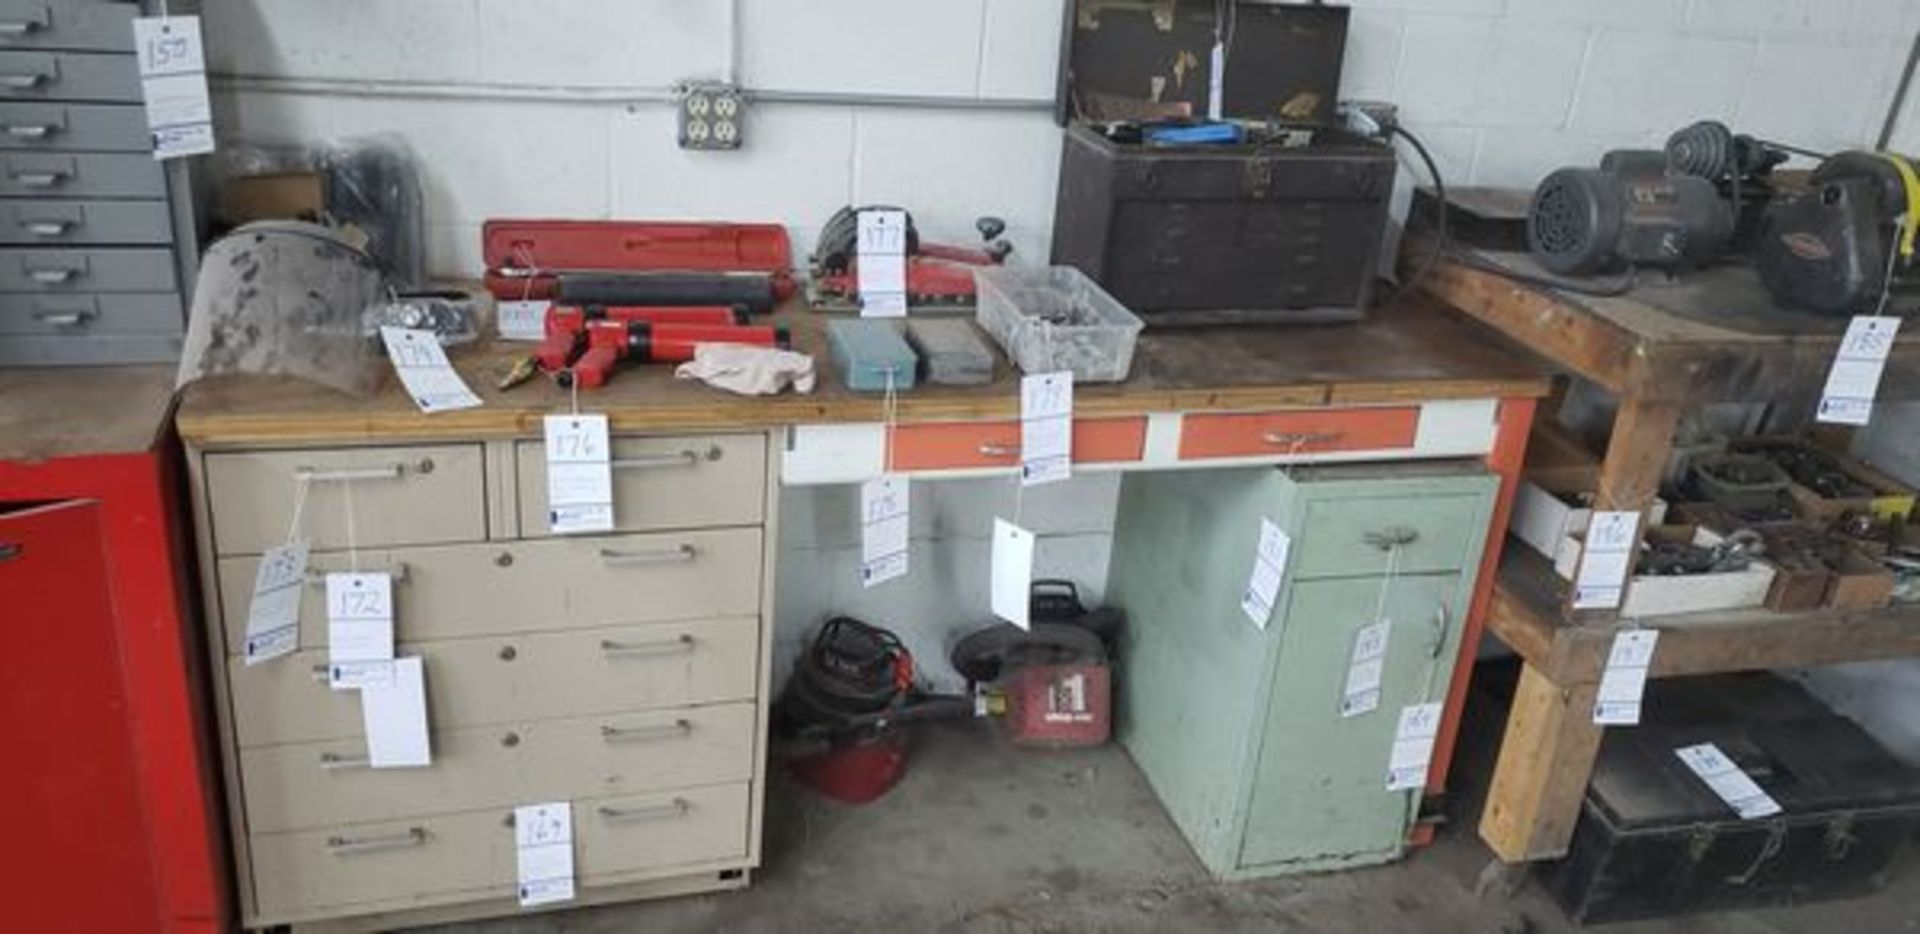 WORK BENCH WITH CABINETS - Image 2 of 2